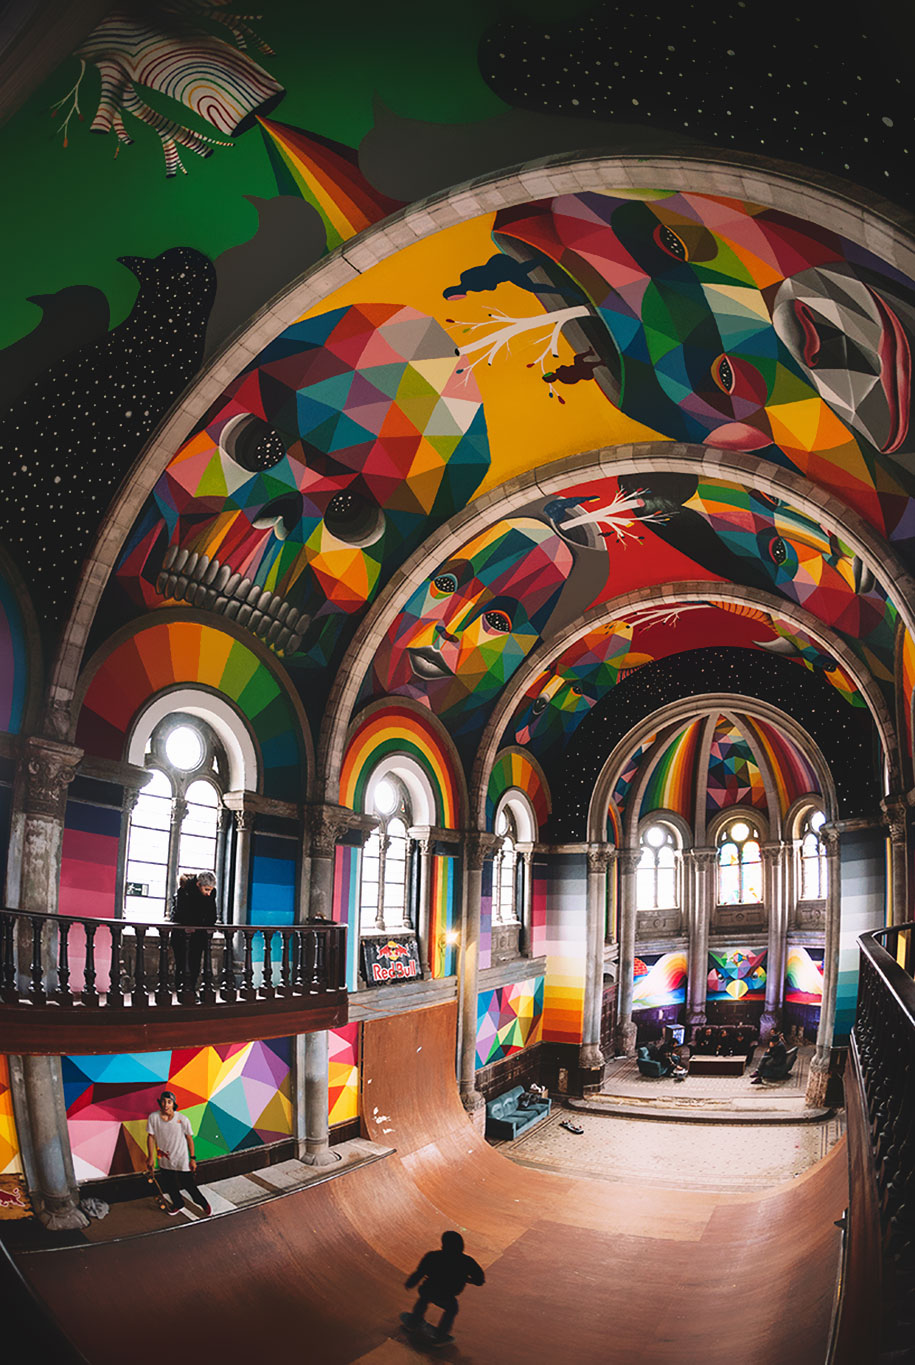 abandoned-church-skate-park-kaos-temple-okuda-san-miguel-9